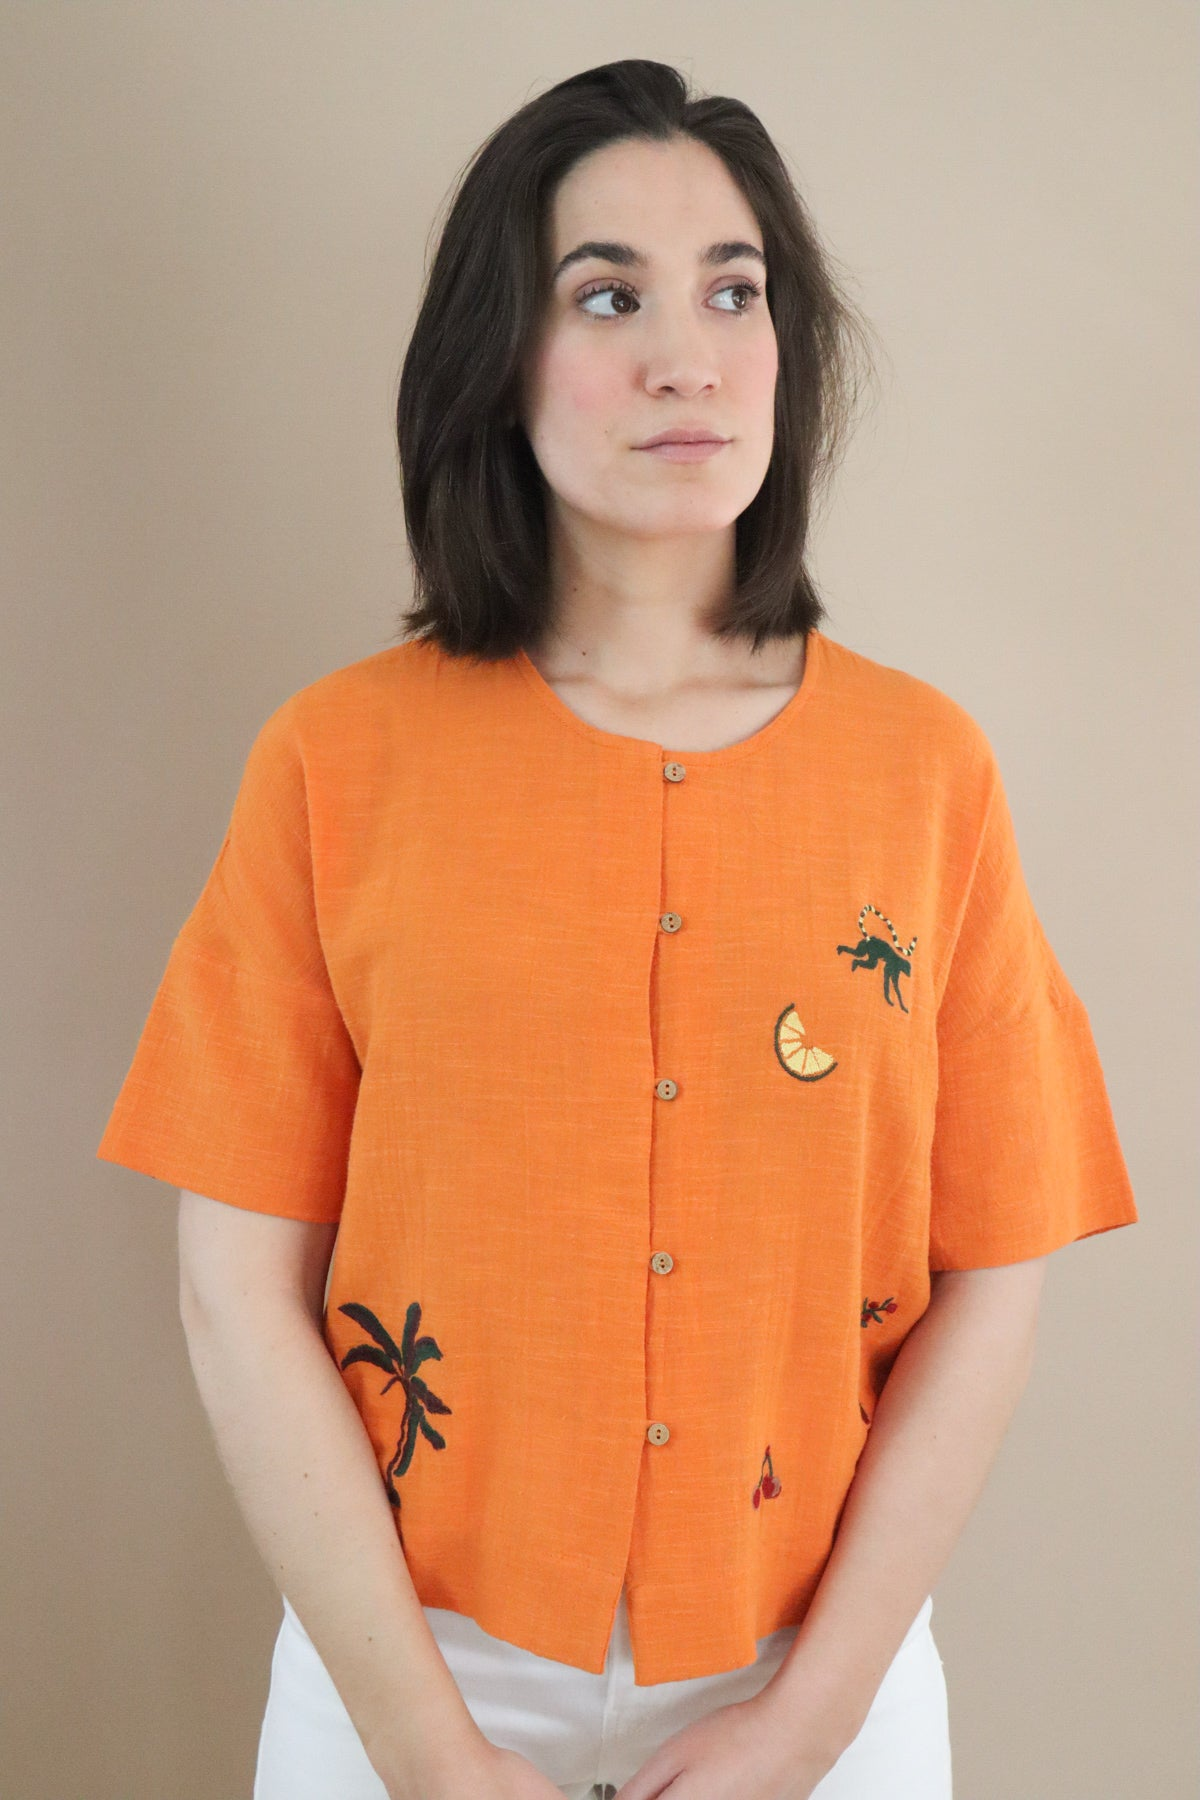 original top in orange